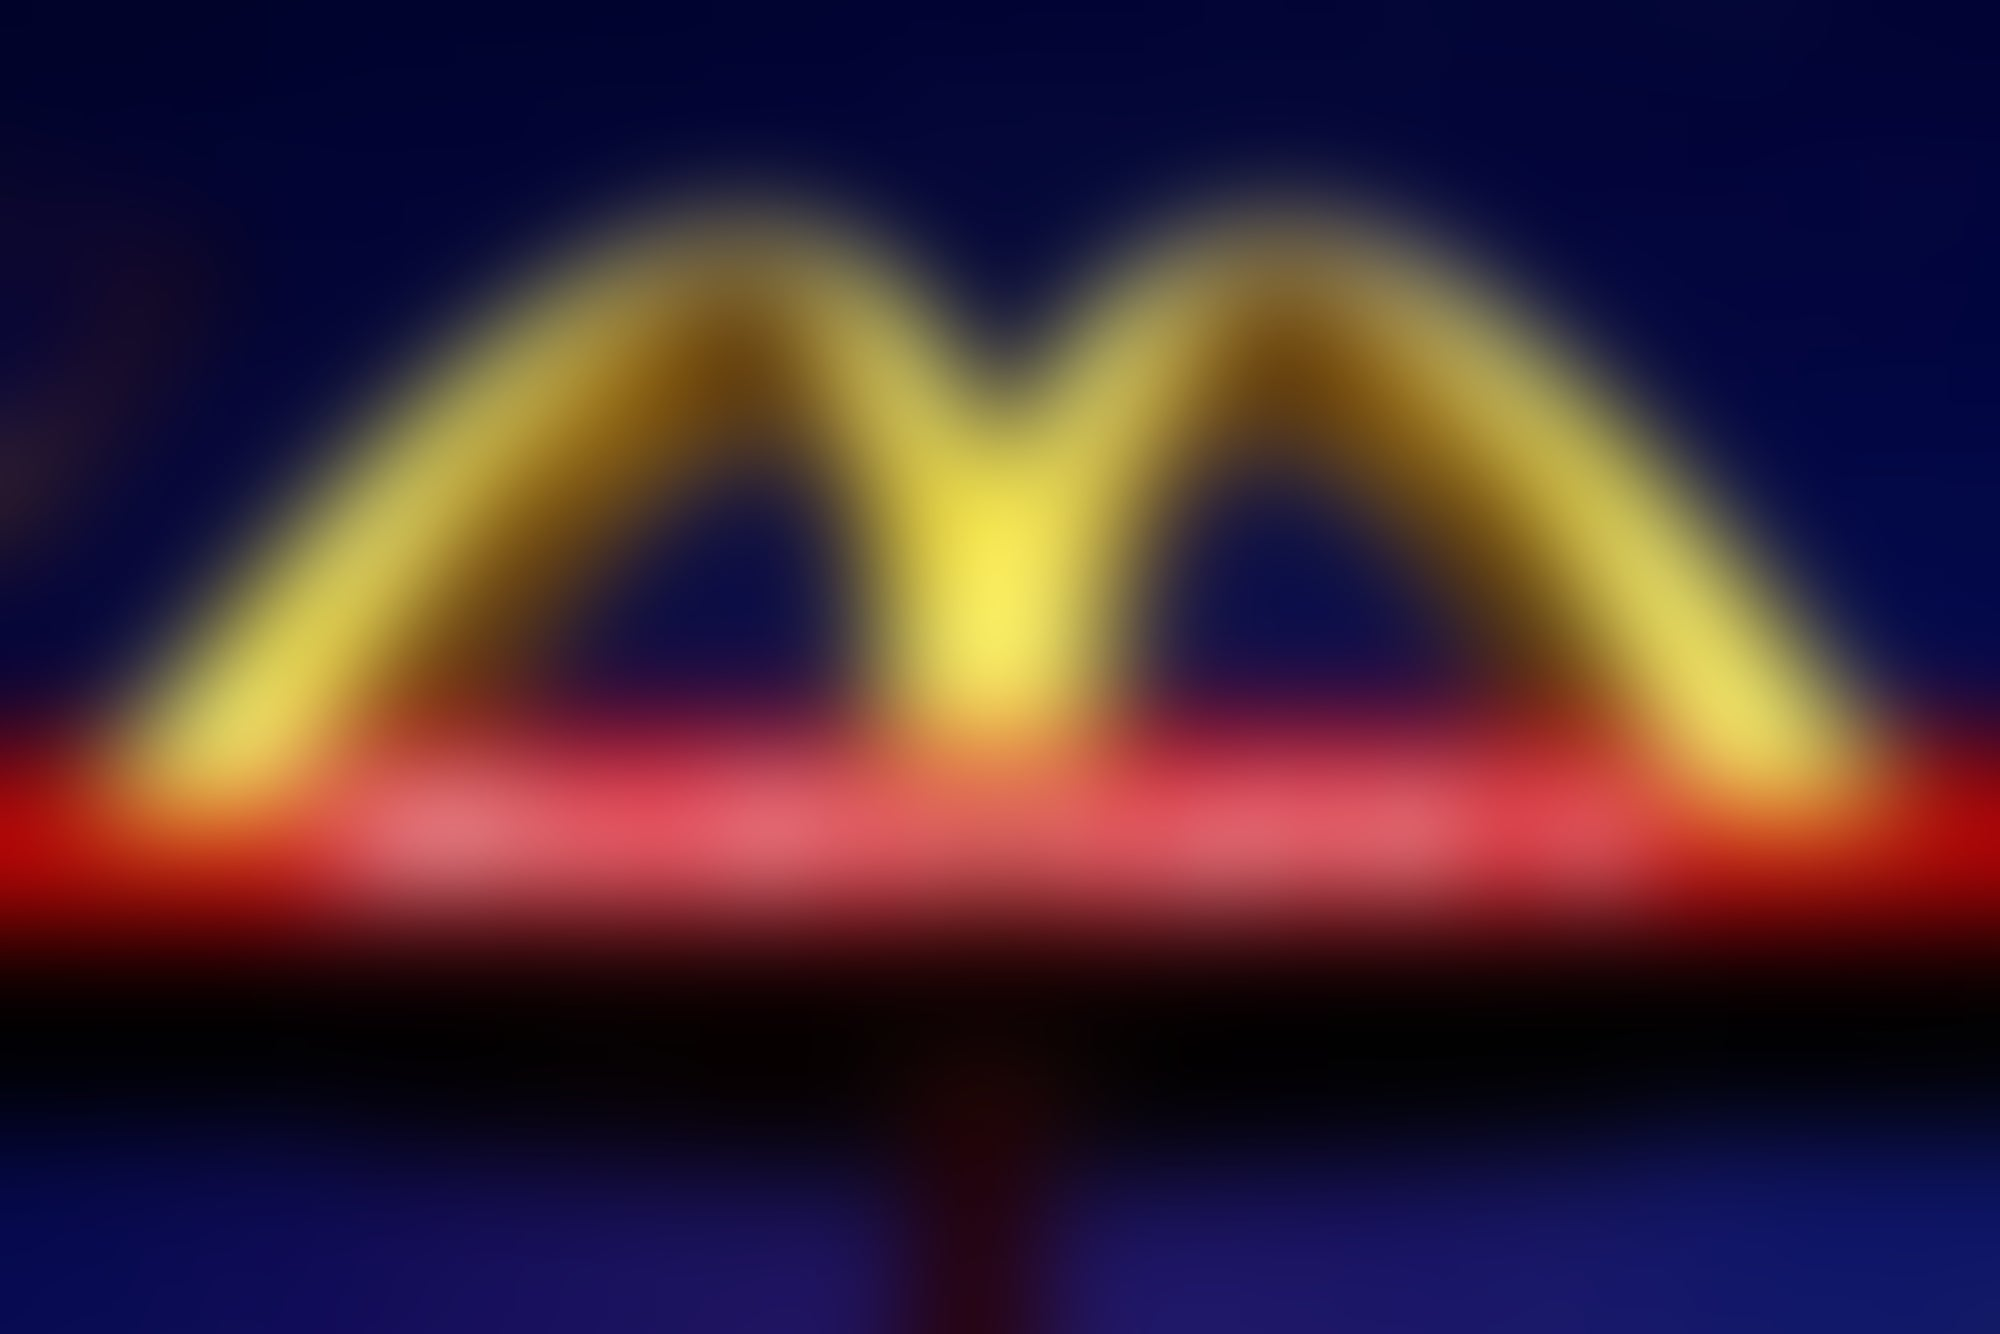 New Year, New Expansion: McDonald's to Open First Restaurant in Vietnam